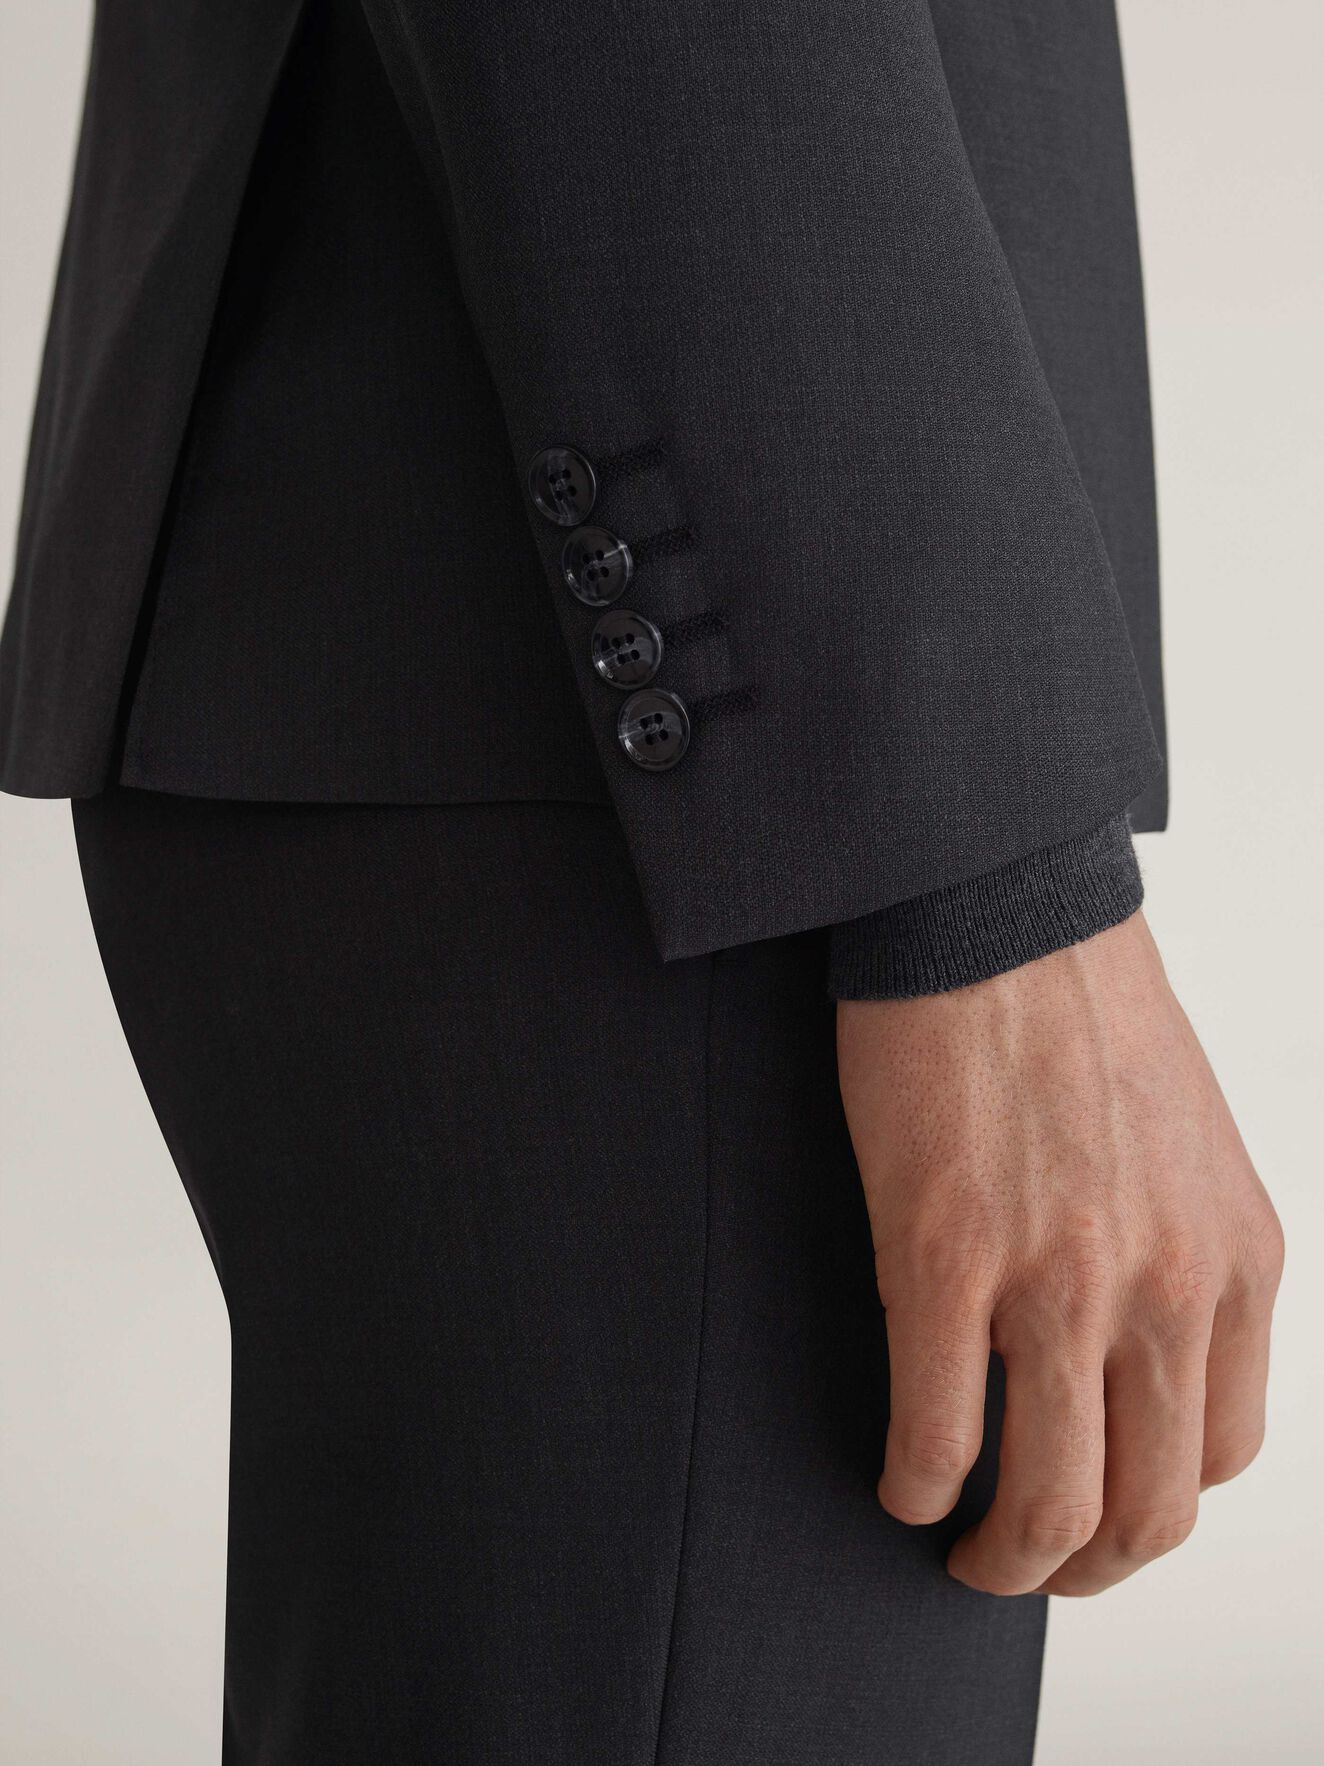 Malthe Trousers in Dark grey from Tiger of Sweden